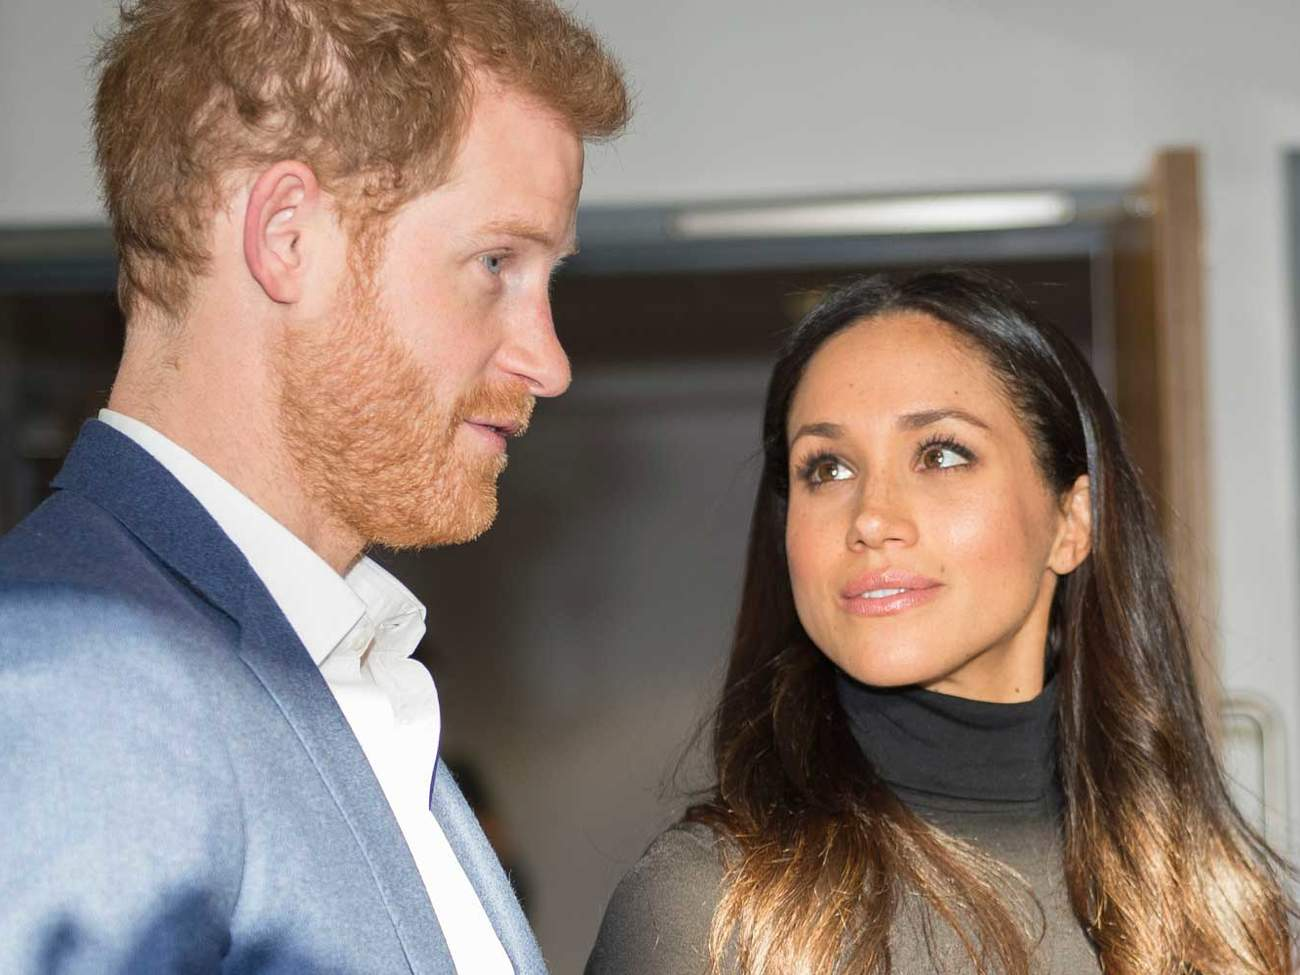 Prince Harry quit smoking for Meghan